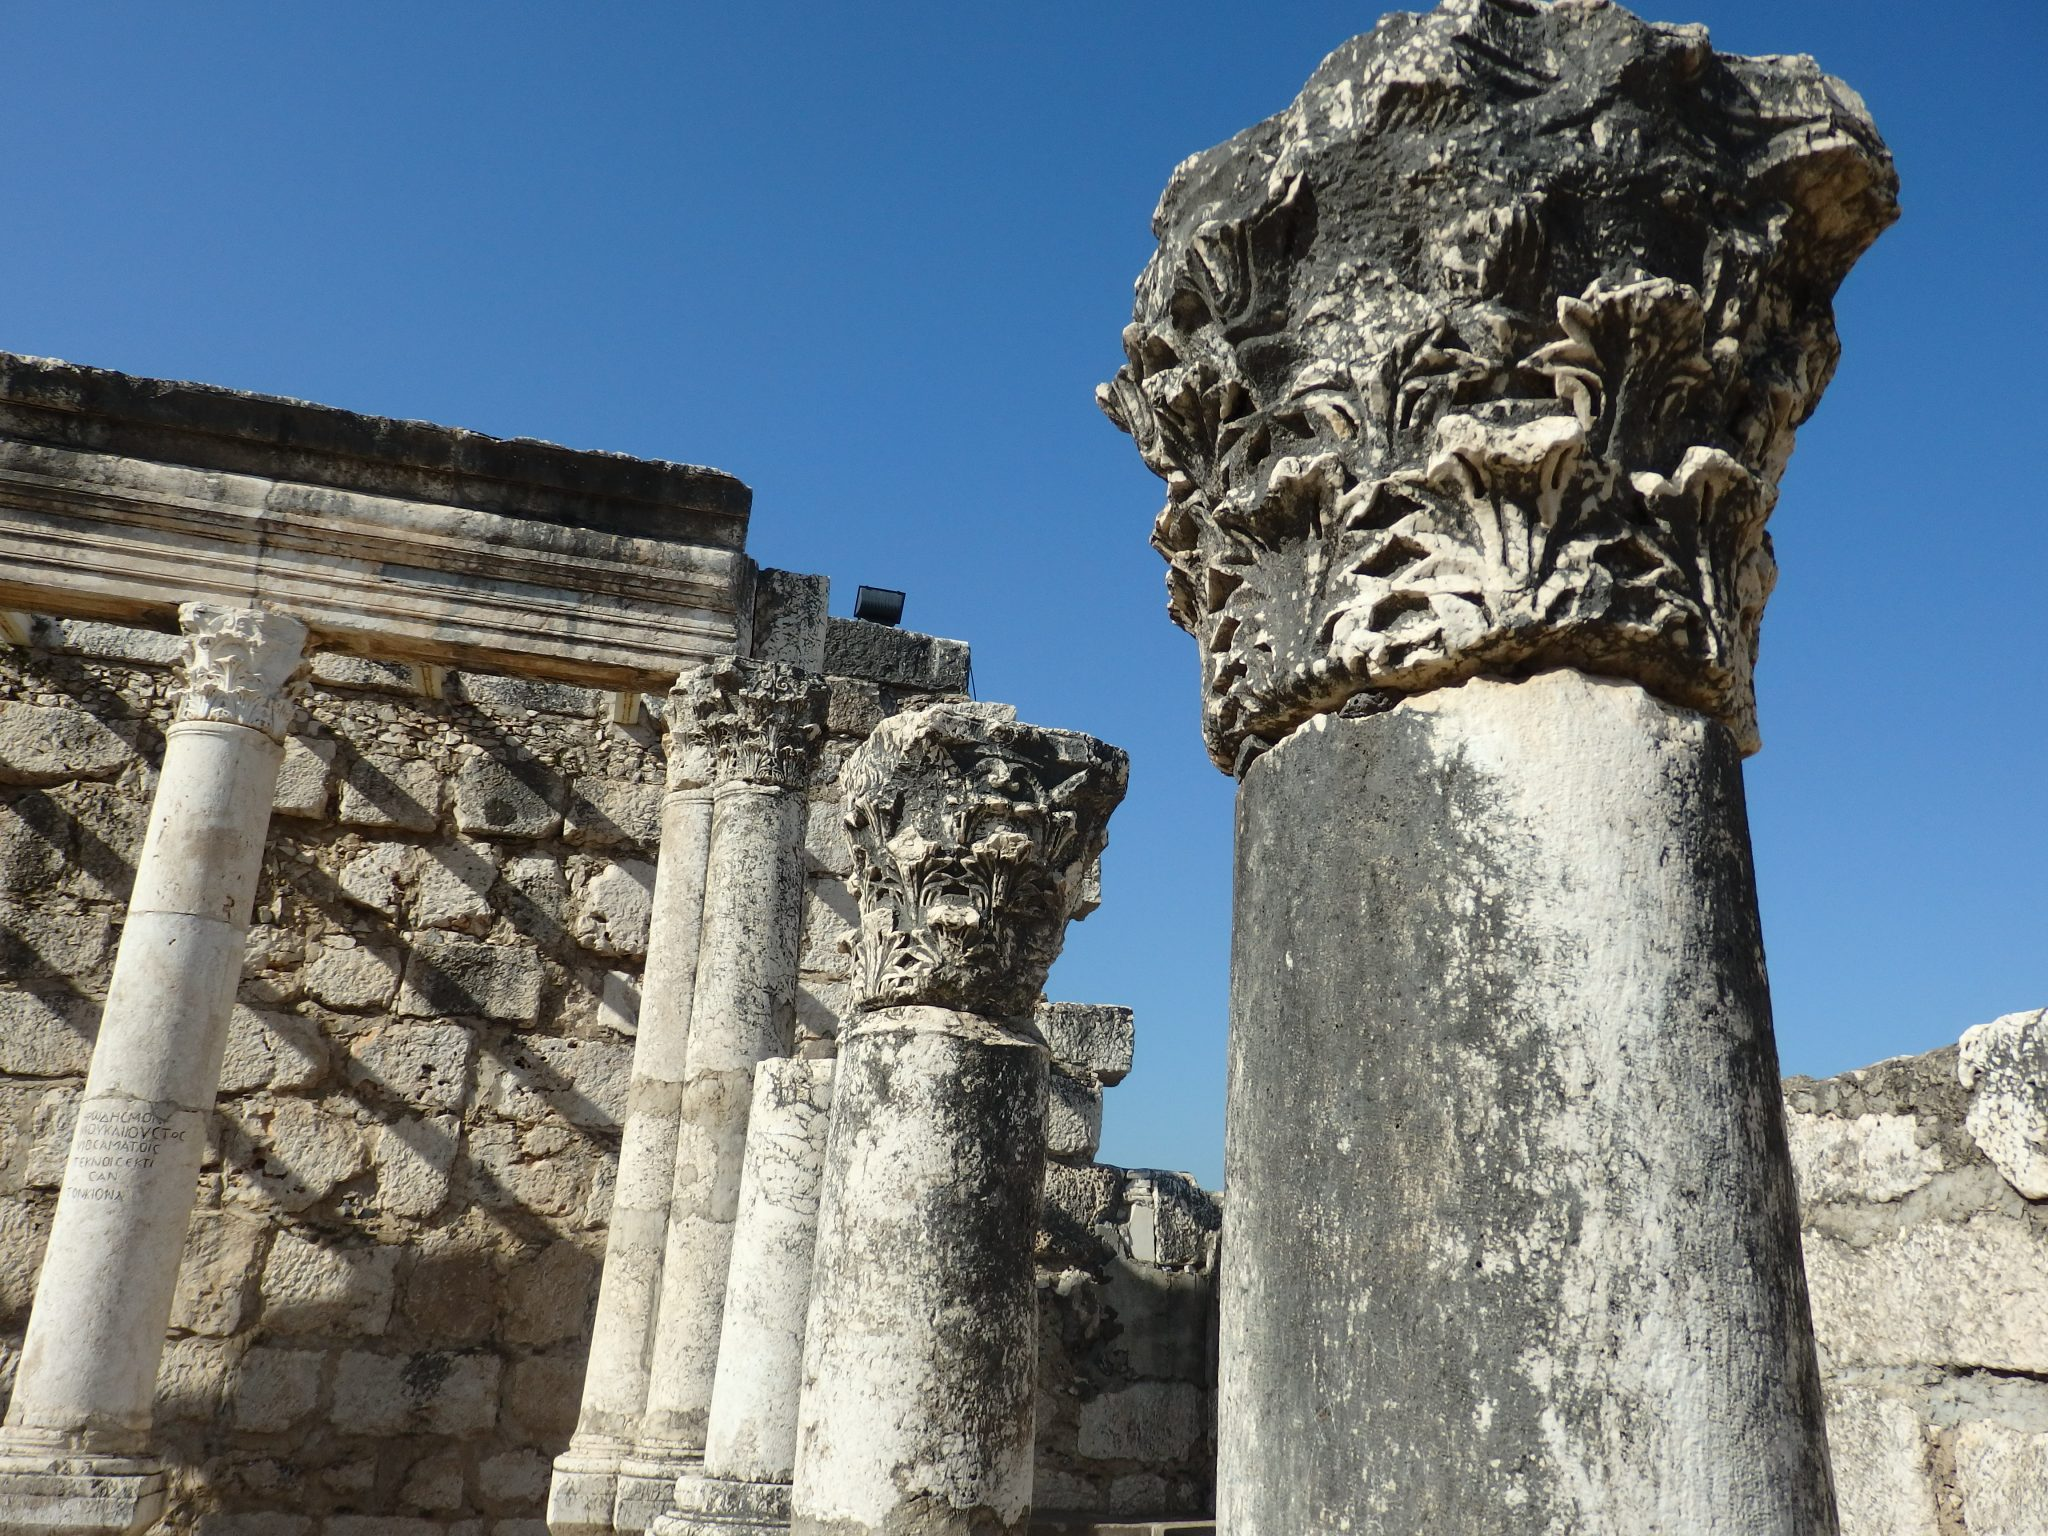 columns in the synagogue at Capernaum